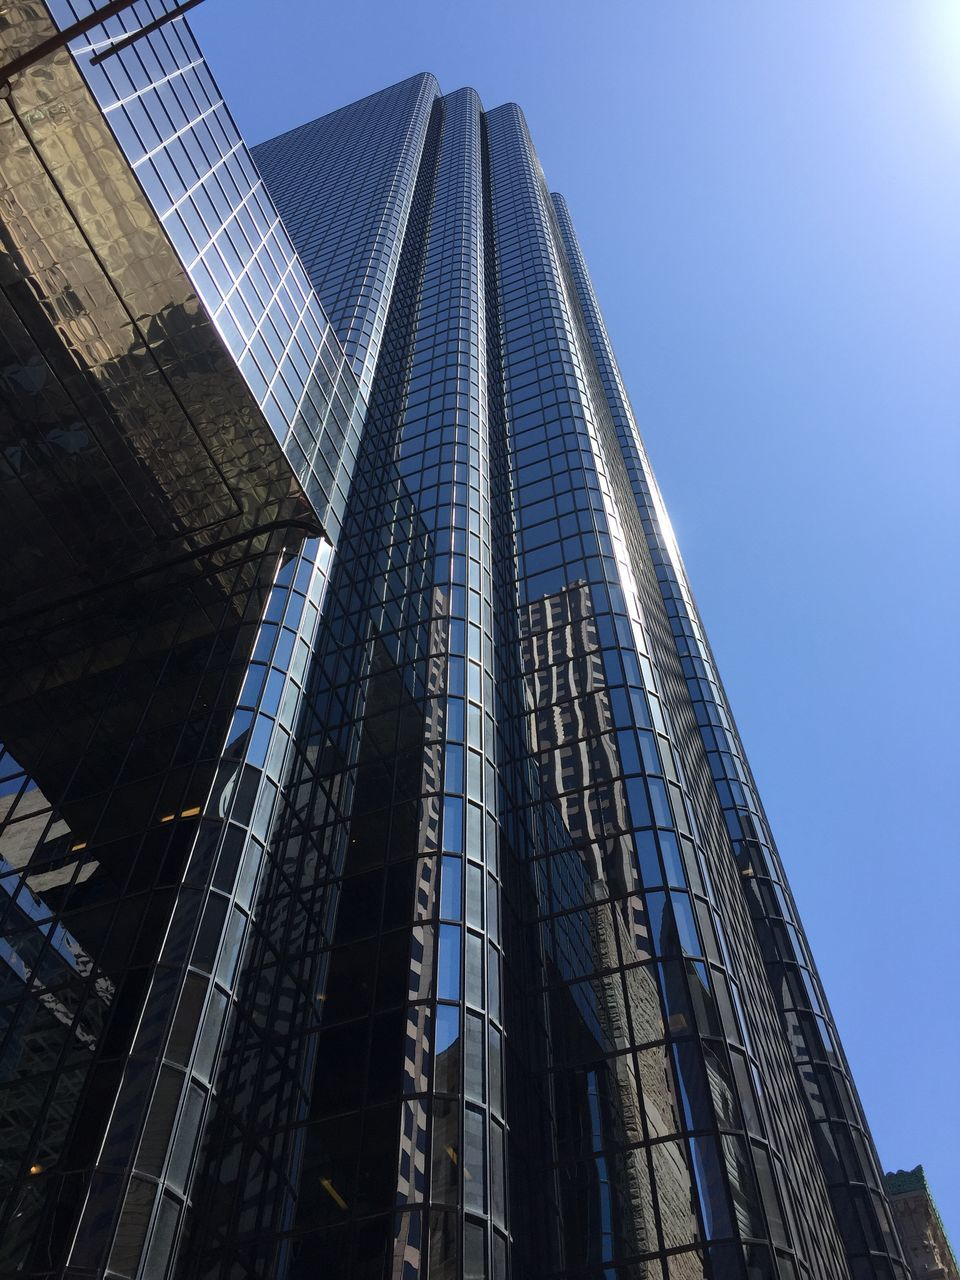 architecture, low angle view, built structure, building exterior, skyscraper, modern, no people, day, city, outdoors, clear sky, sky